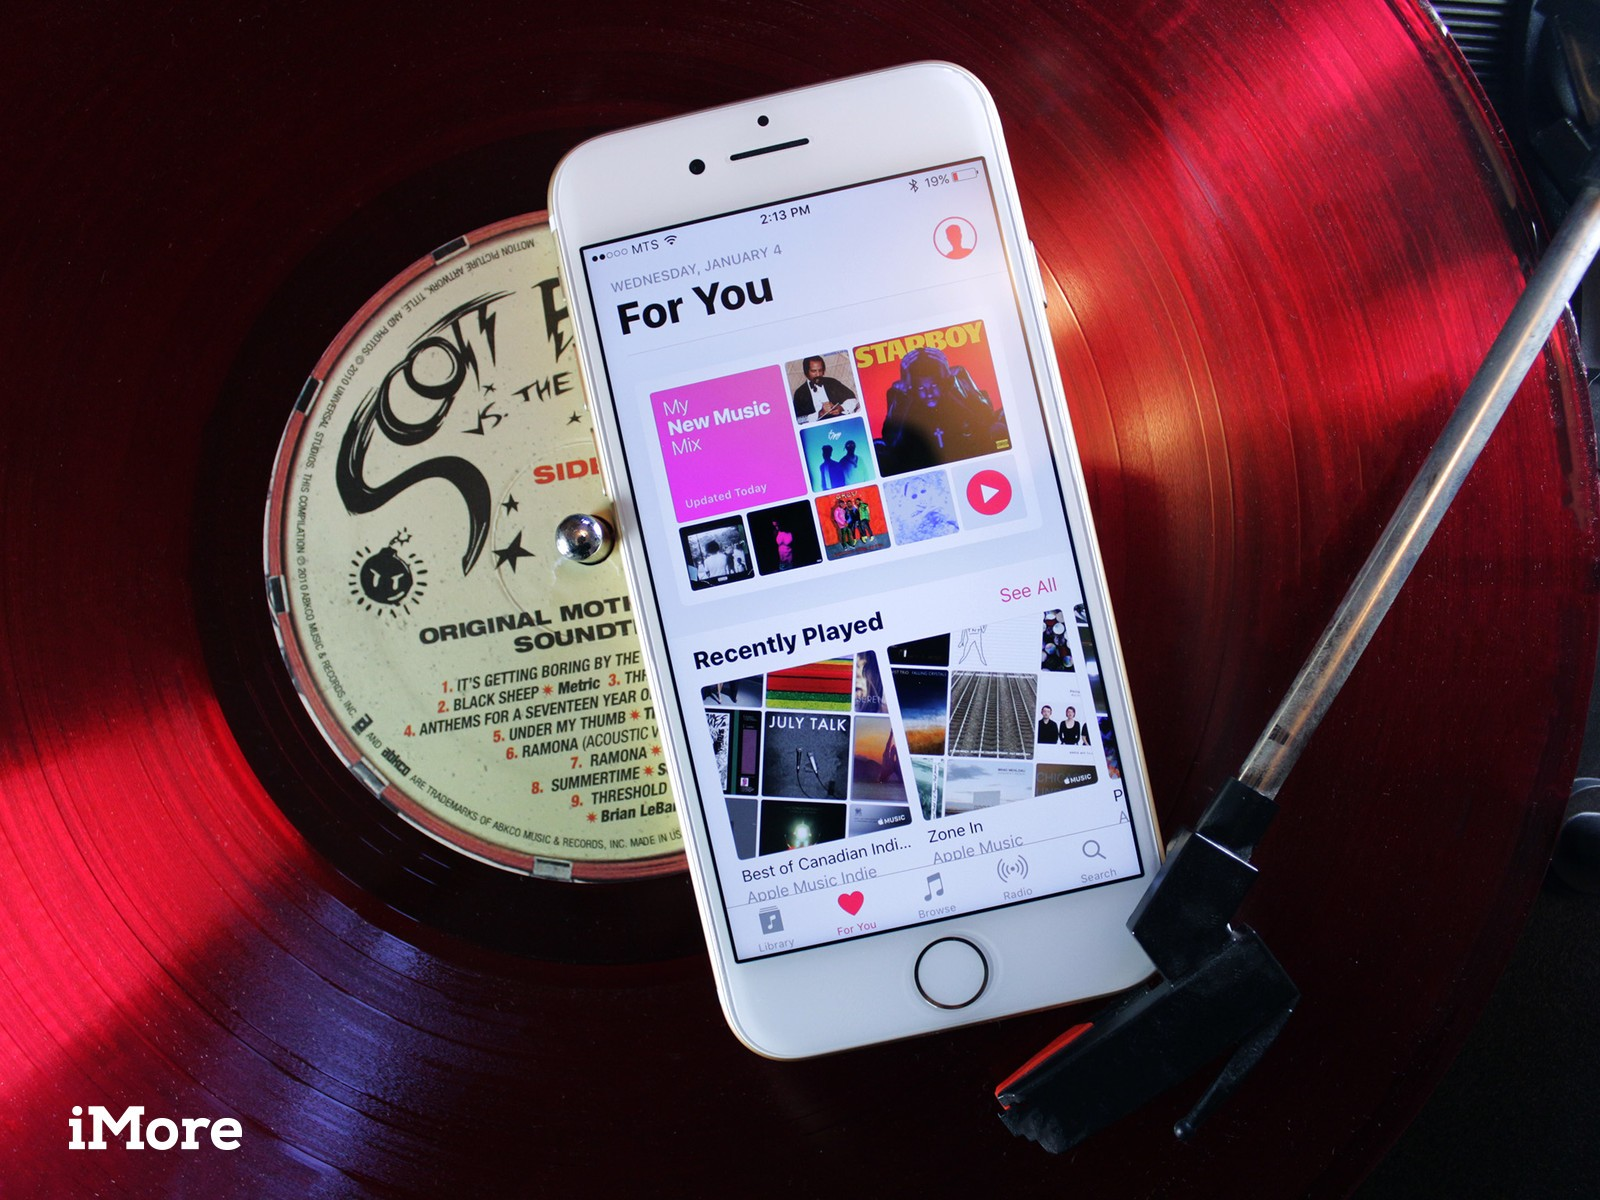 How to set up and modify your user profile in Apple Music